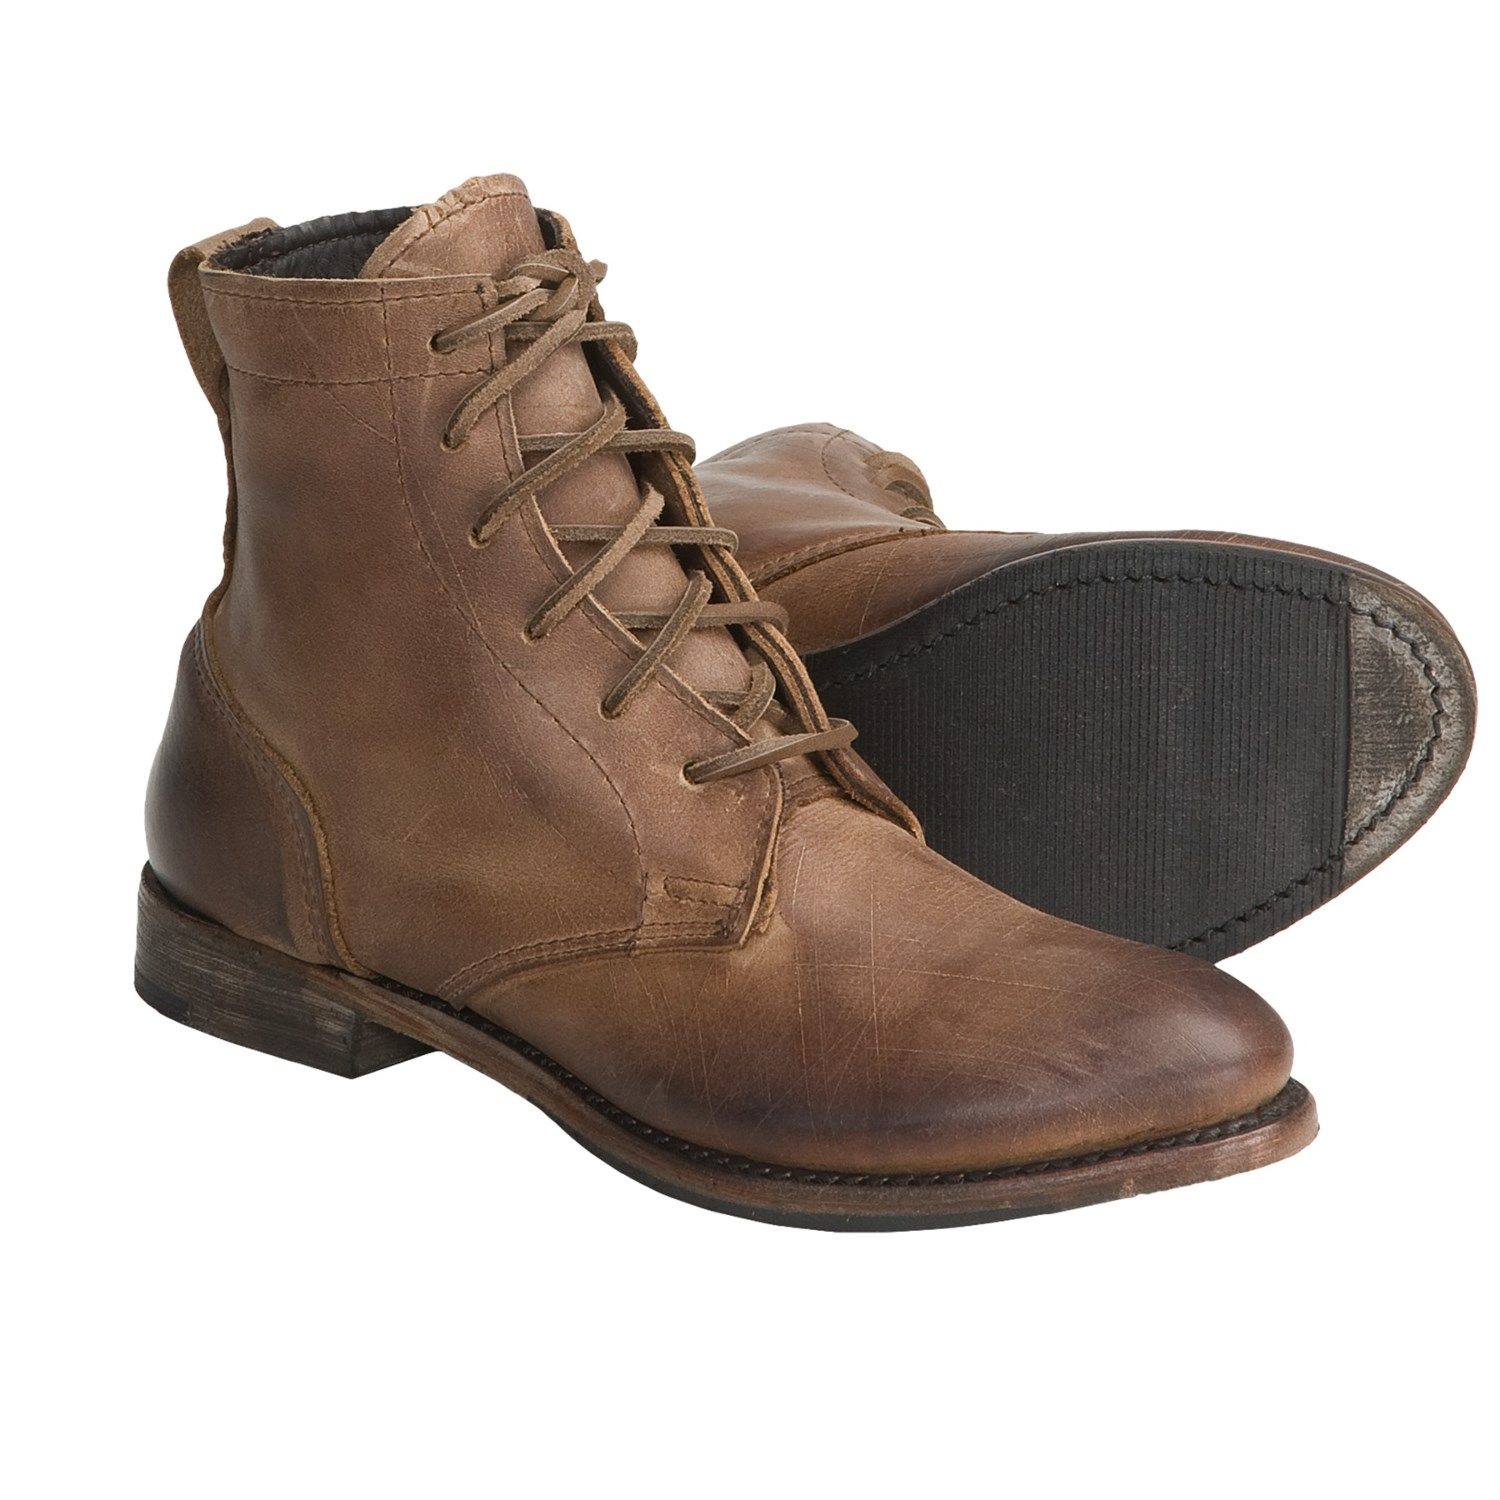 Unique In The Larger Context Of Menswear For The Coming Chillier Season, We Find That The Purpose Of Mens Boots Fall Into The Third Category  As Vibrant Leather Is Largely A Nogo For Late 2012 Chukka Boots Also Continue To Rise Through The Ranks Of